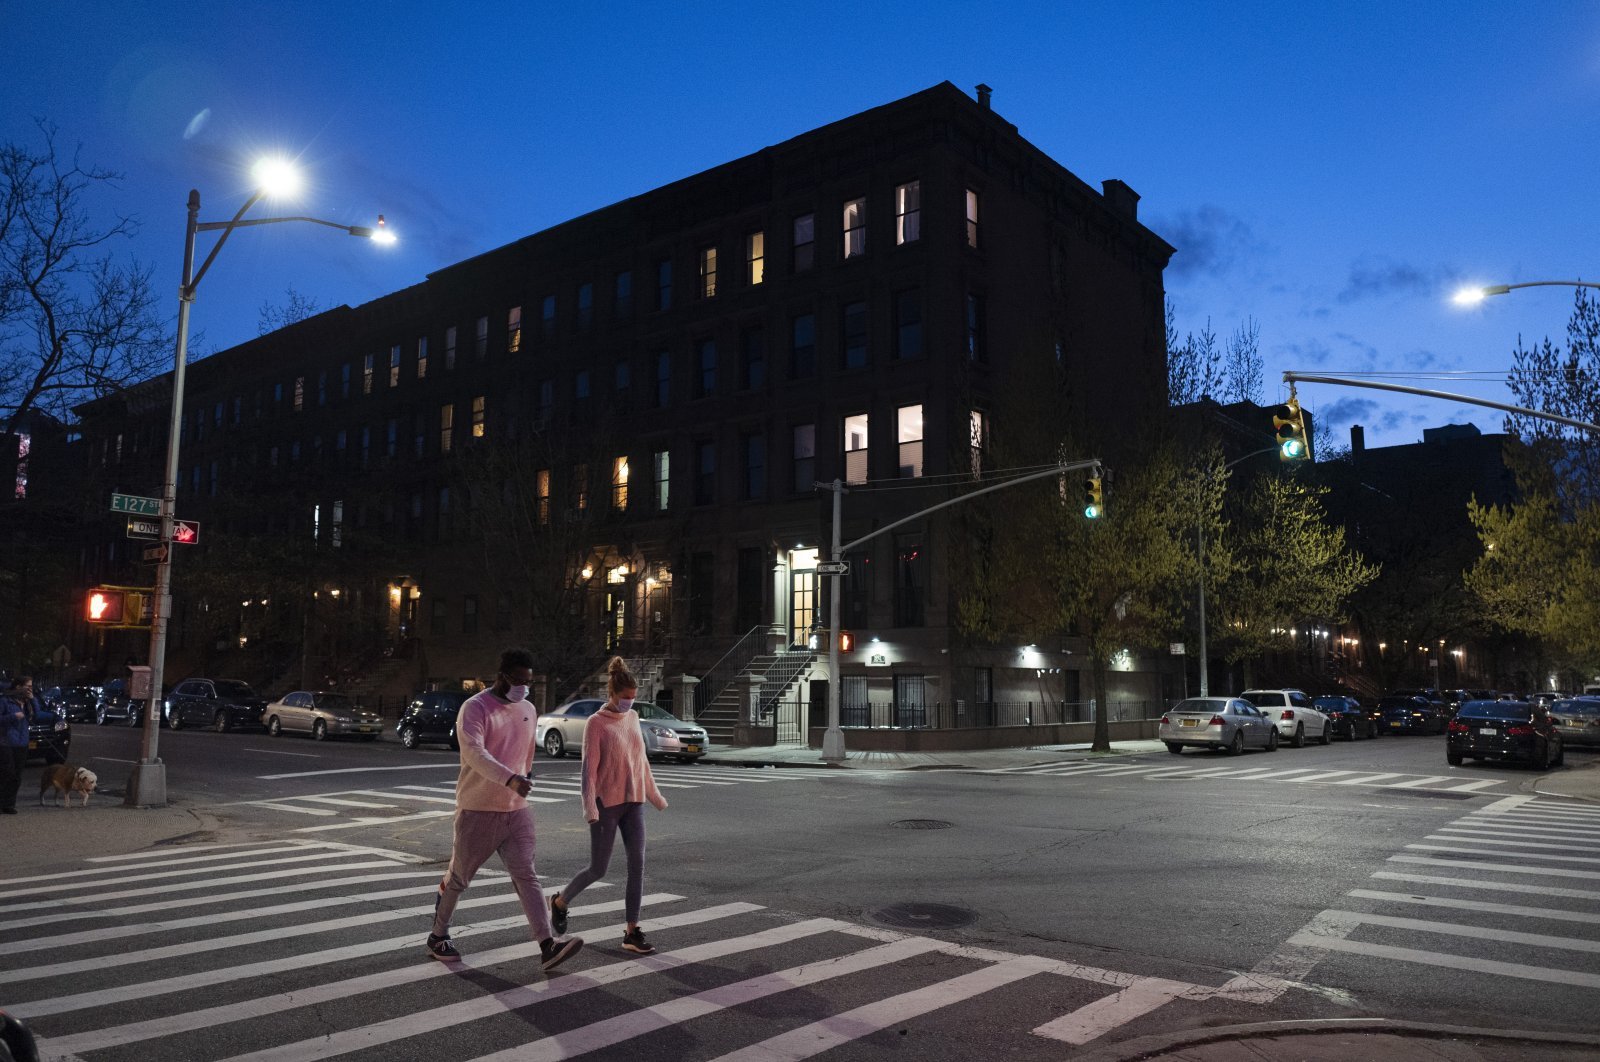 People wearing masks cross the street at Langston Hughes Place in Harlem during the coronavirus pandemic, in New York City, New York, U.S., April 15, 2020. (AP Photo)